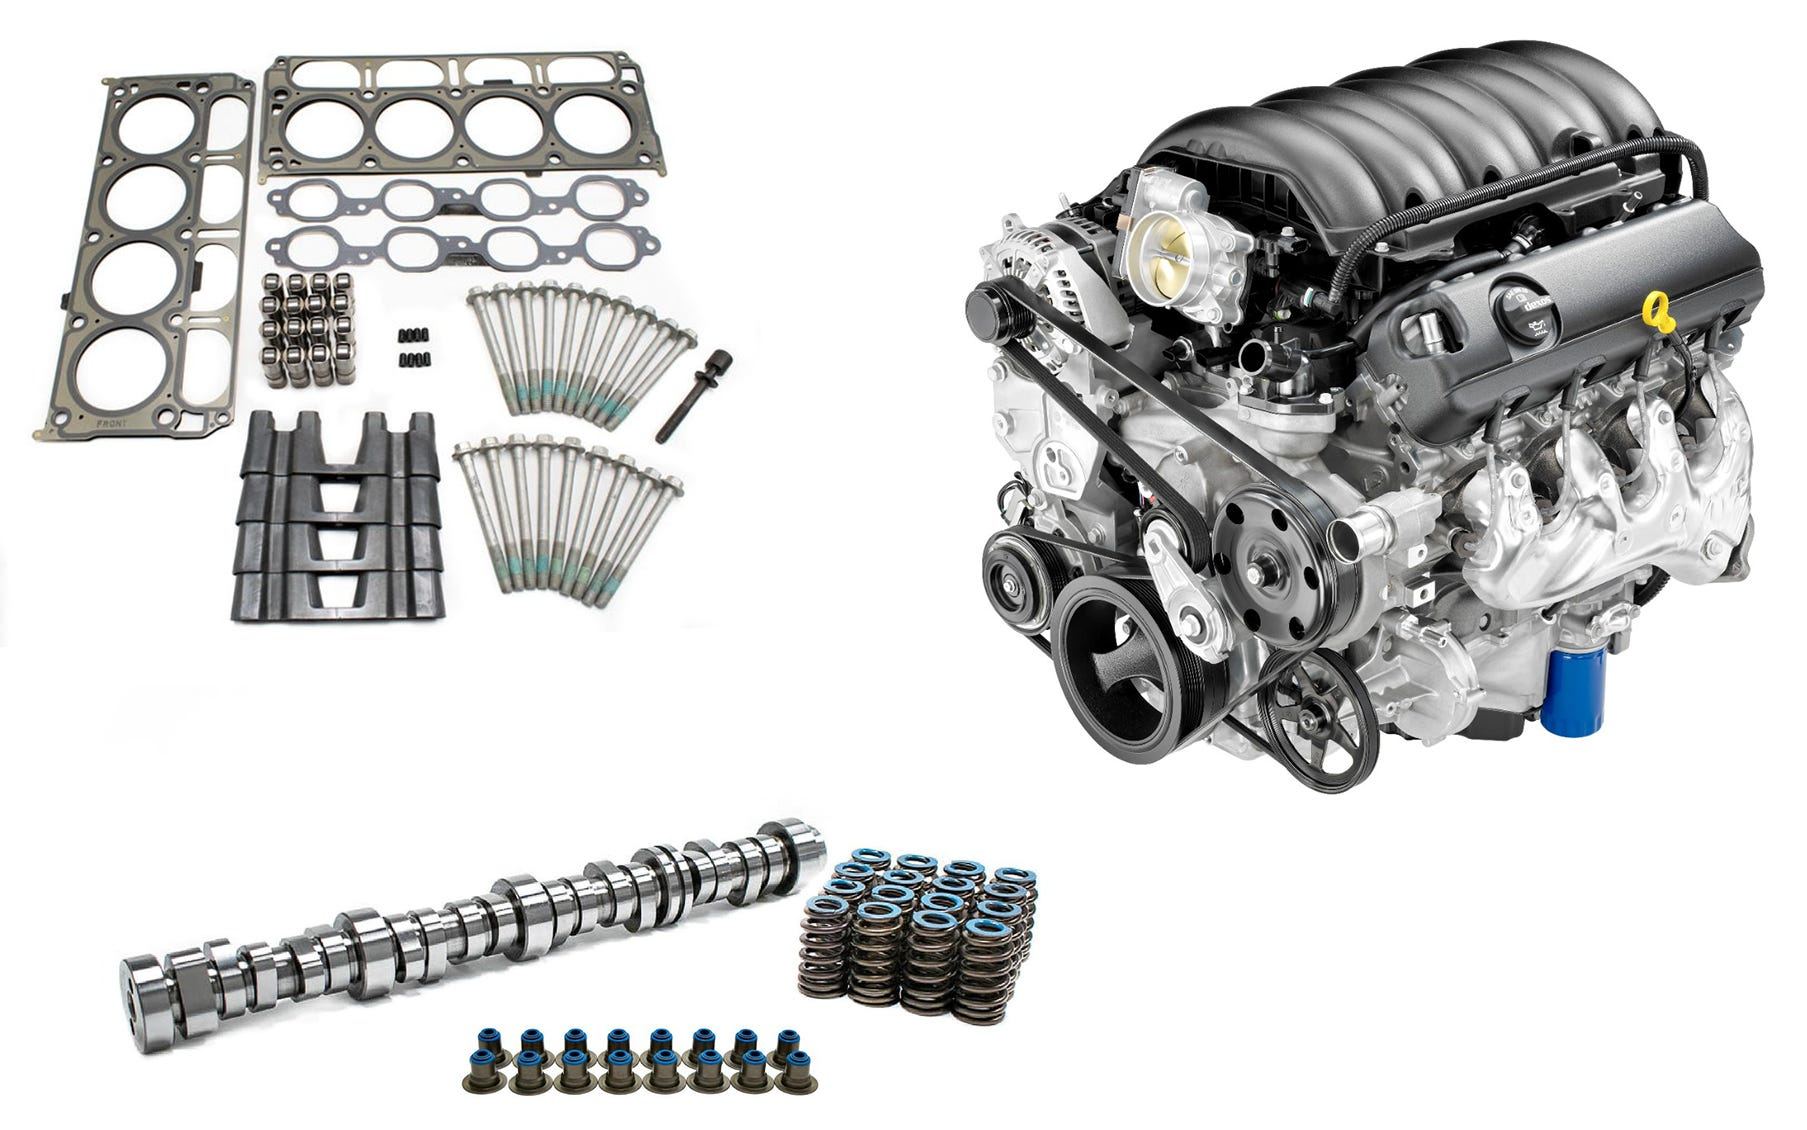 L83 5.3L CRATE ENGINE COMBO